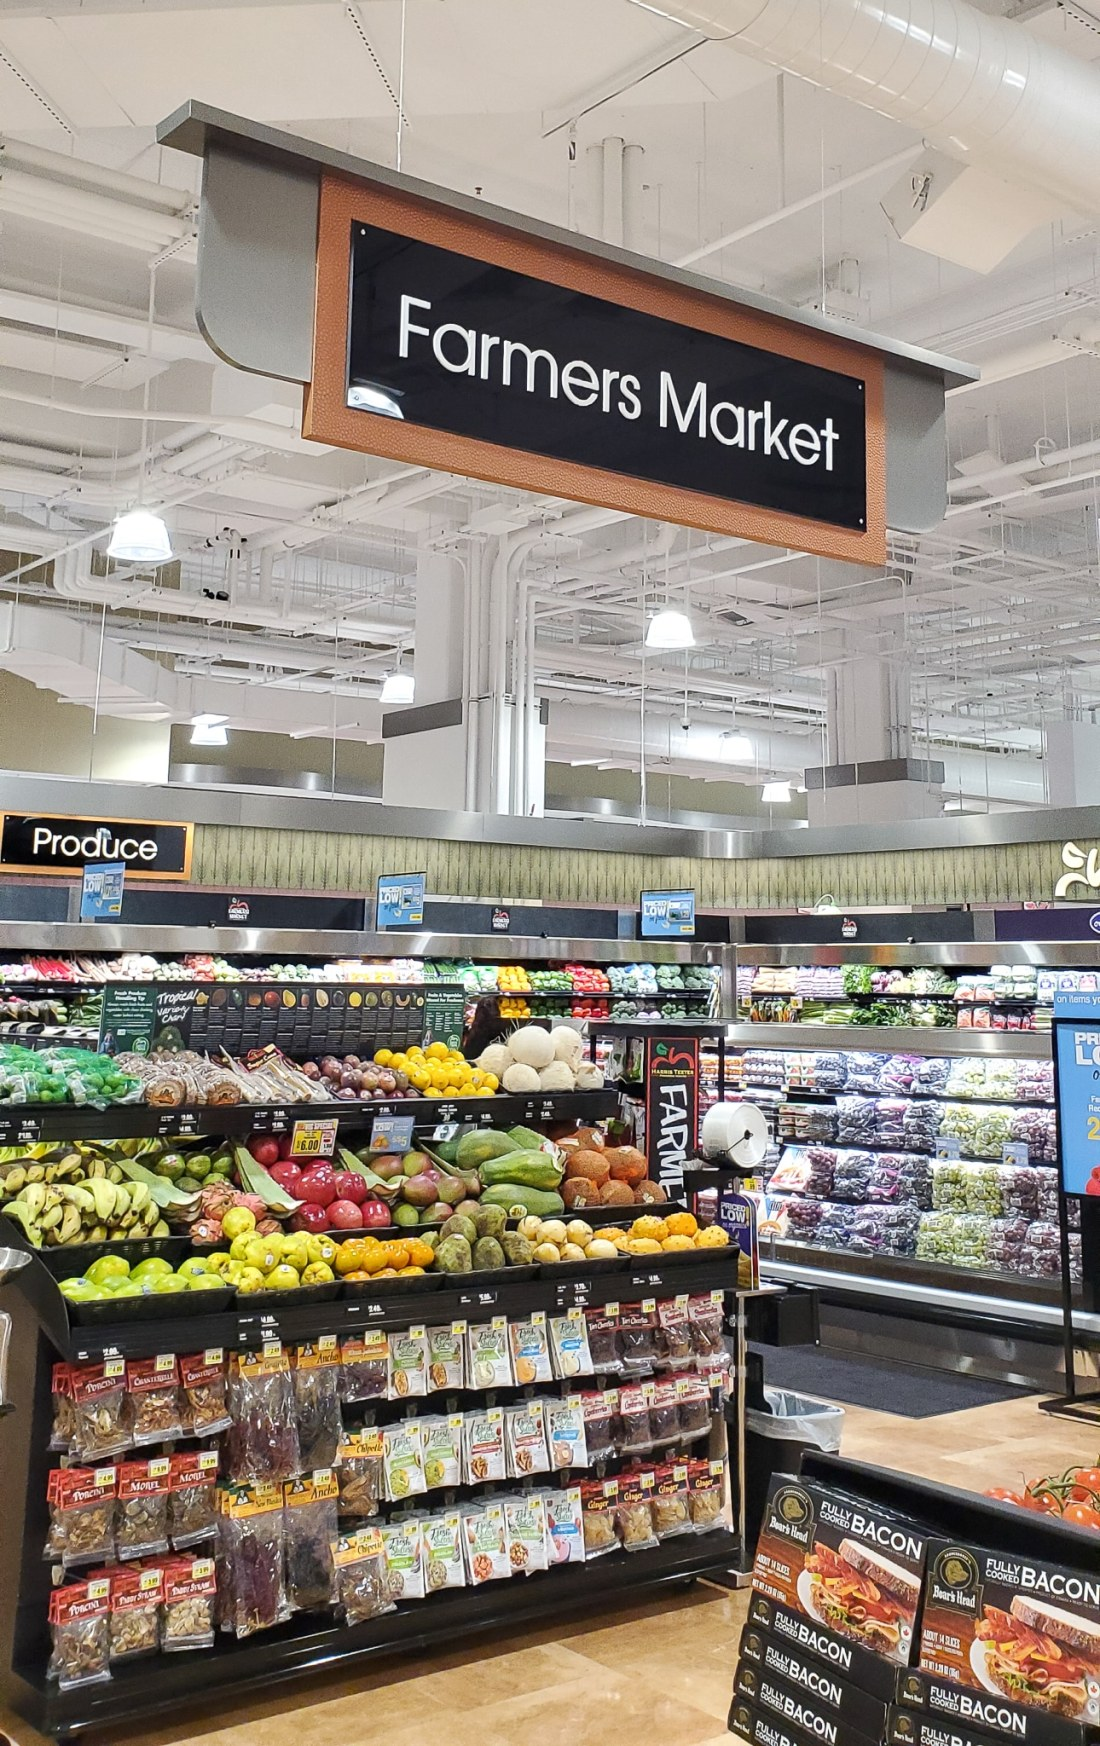 Farmers Market Harris Teeter. Harris Teeter not only sources its meat locally, but they also source their produce from local farmers in Virginia. Bringing local farmers produce straight to you with the Harris Teeter Farmers Market.